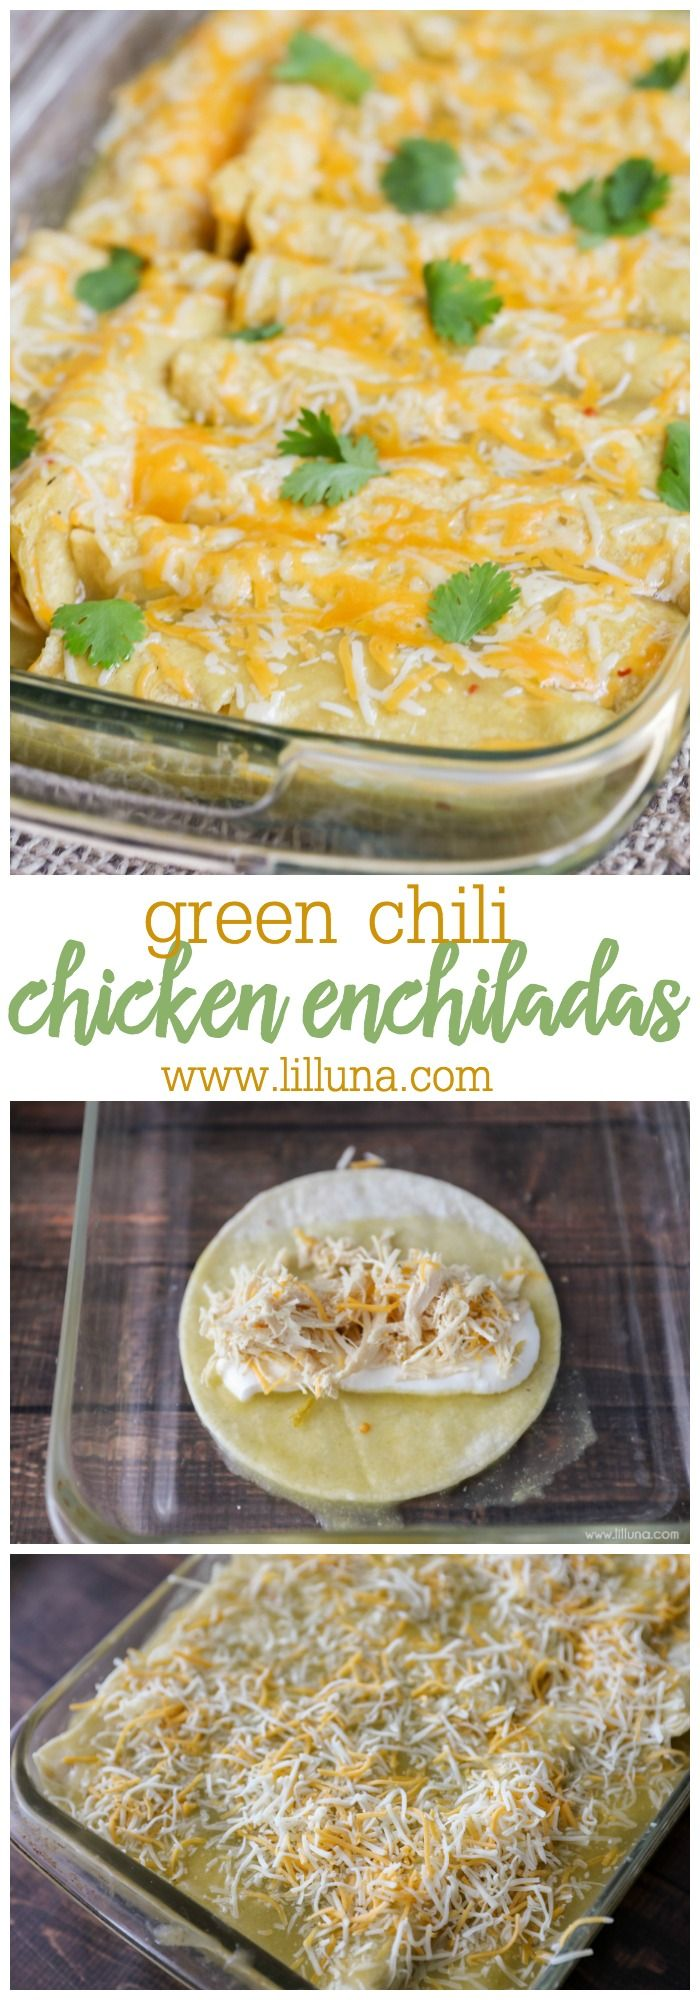 Best Green Chile Chicken Enchiladas Video Lil Luna Recipe Mexican Food Recipes Recipes Enchilada Recipes